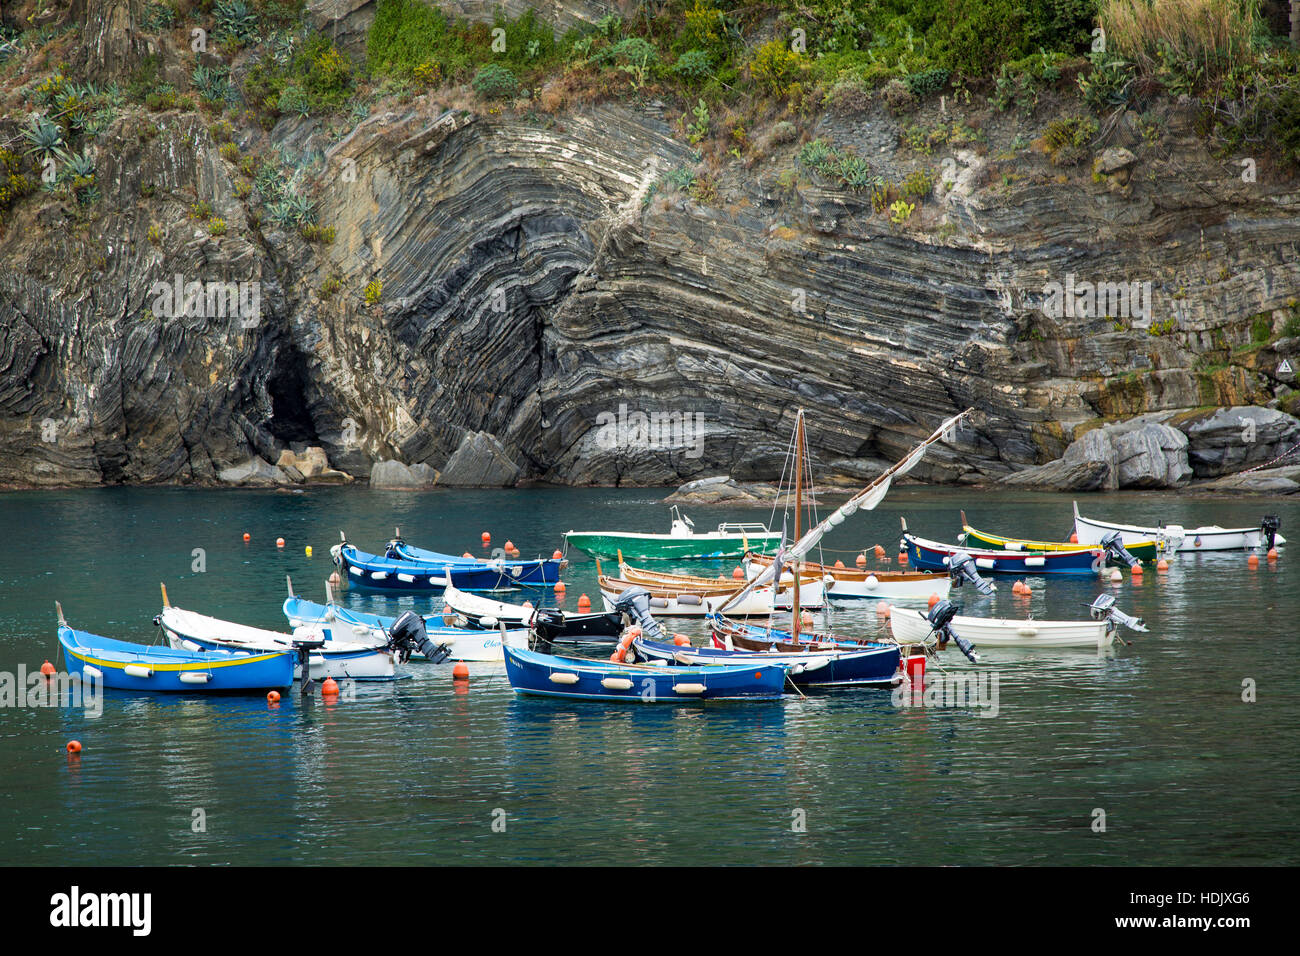 Small boats in the harbor at Vernazza, Cinque Terre, Liguria, Italy - Stock Image